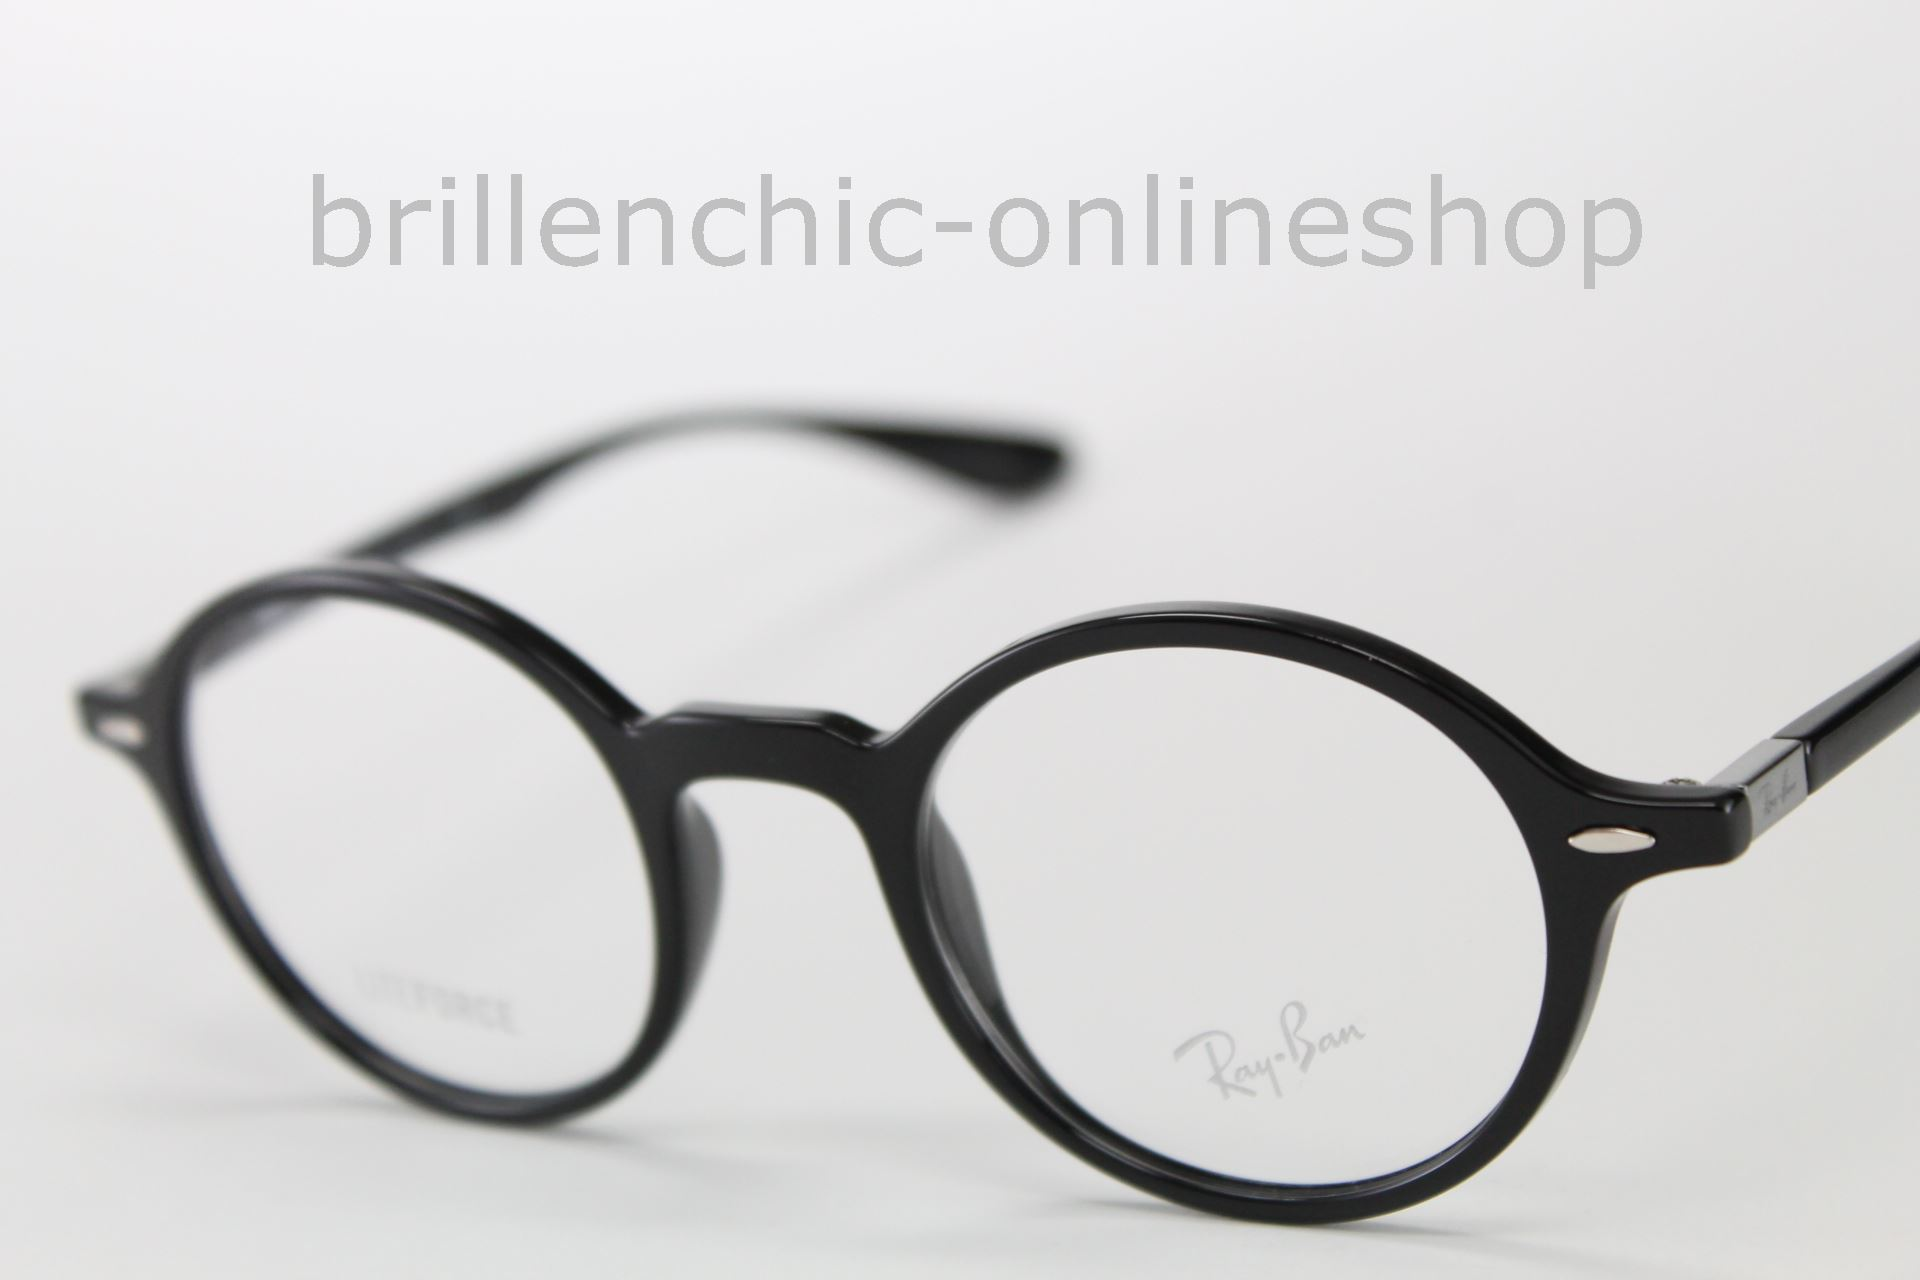 1b9076f2e42 Brillenchic-onlineshop in Berlin - Ray Ban RB 7069 5206 LITE FORCE